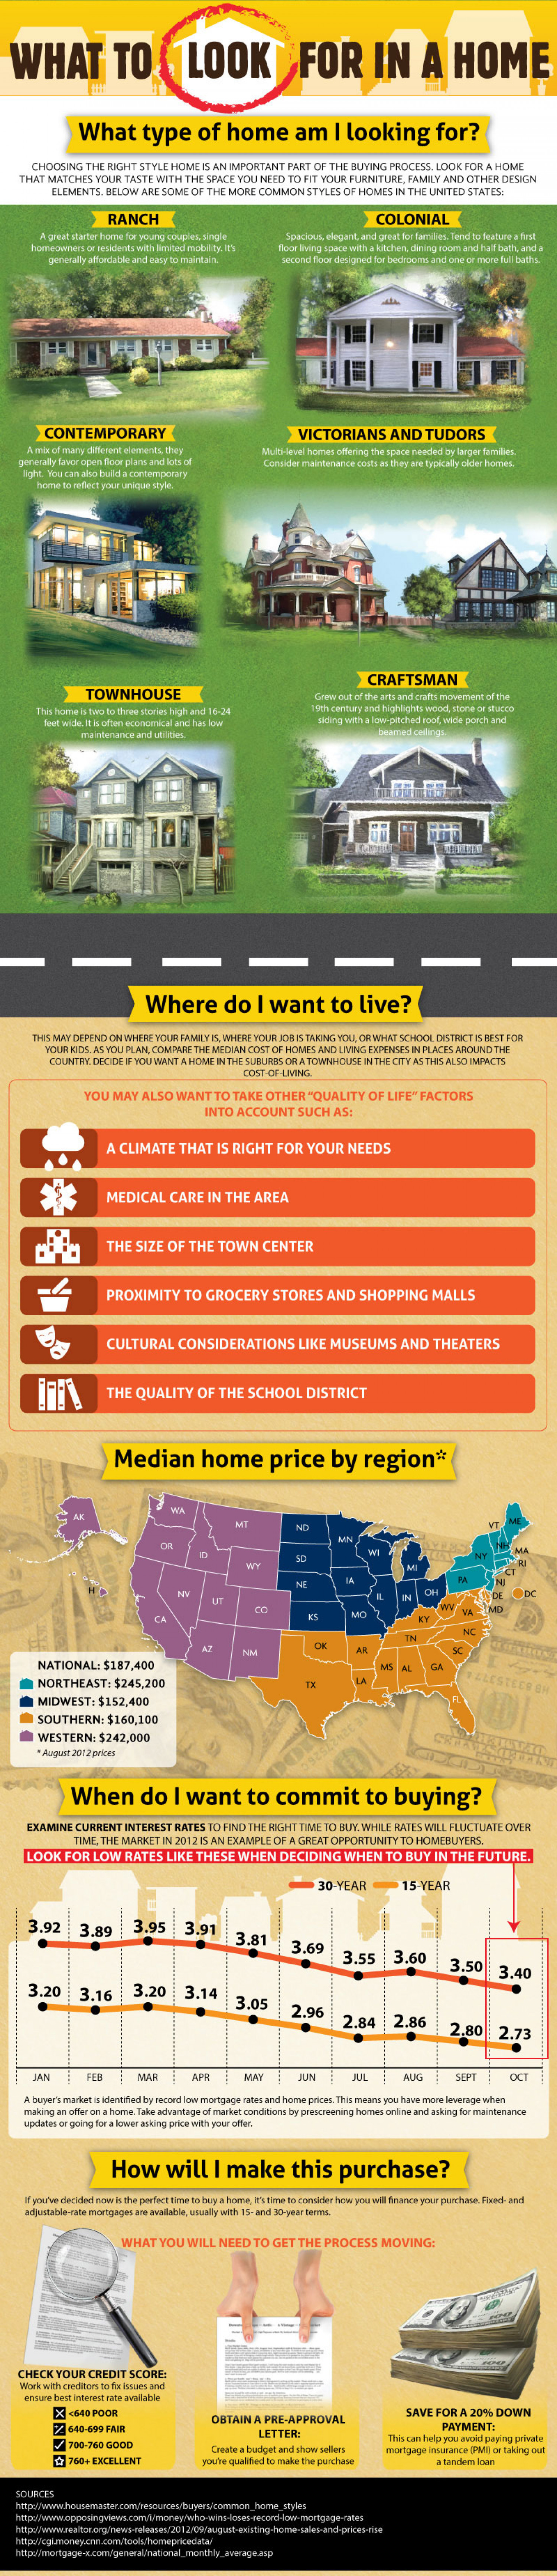 How to Find the Perfect Home Infographic